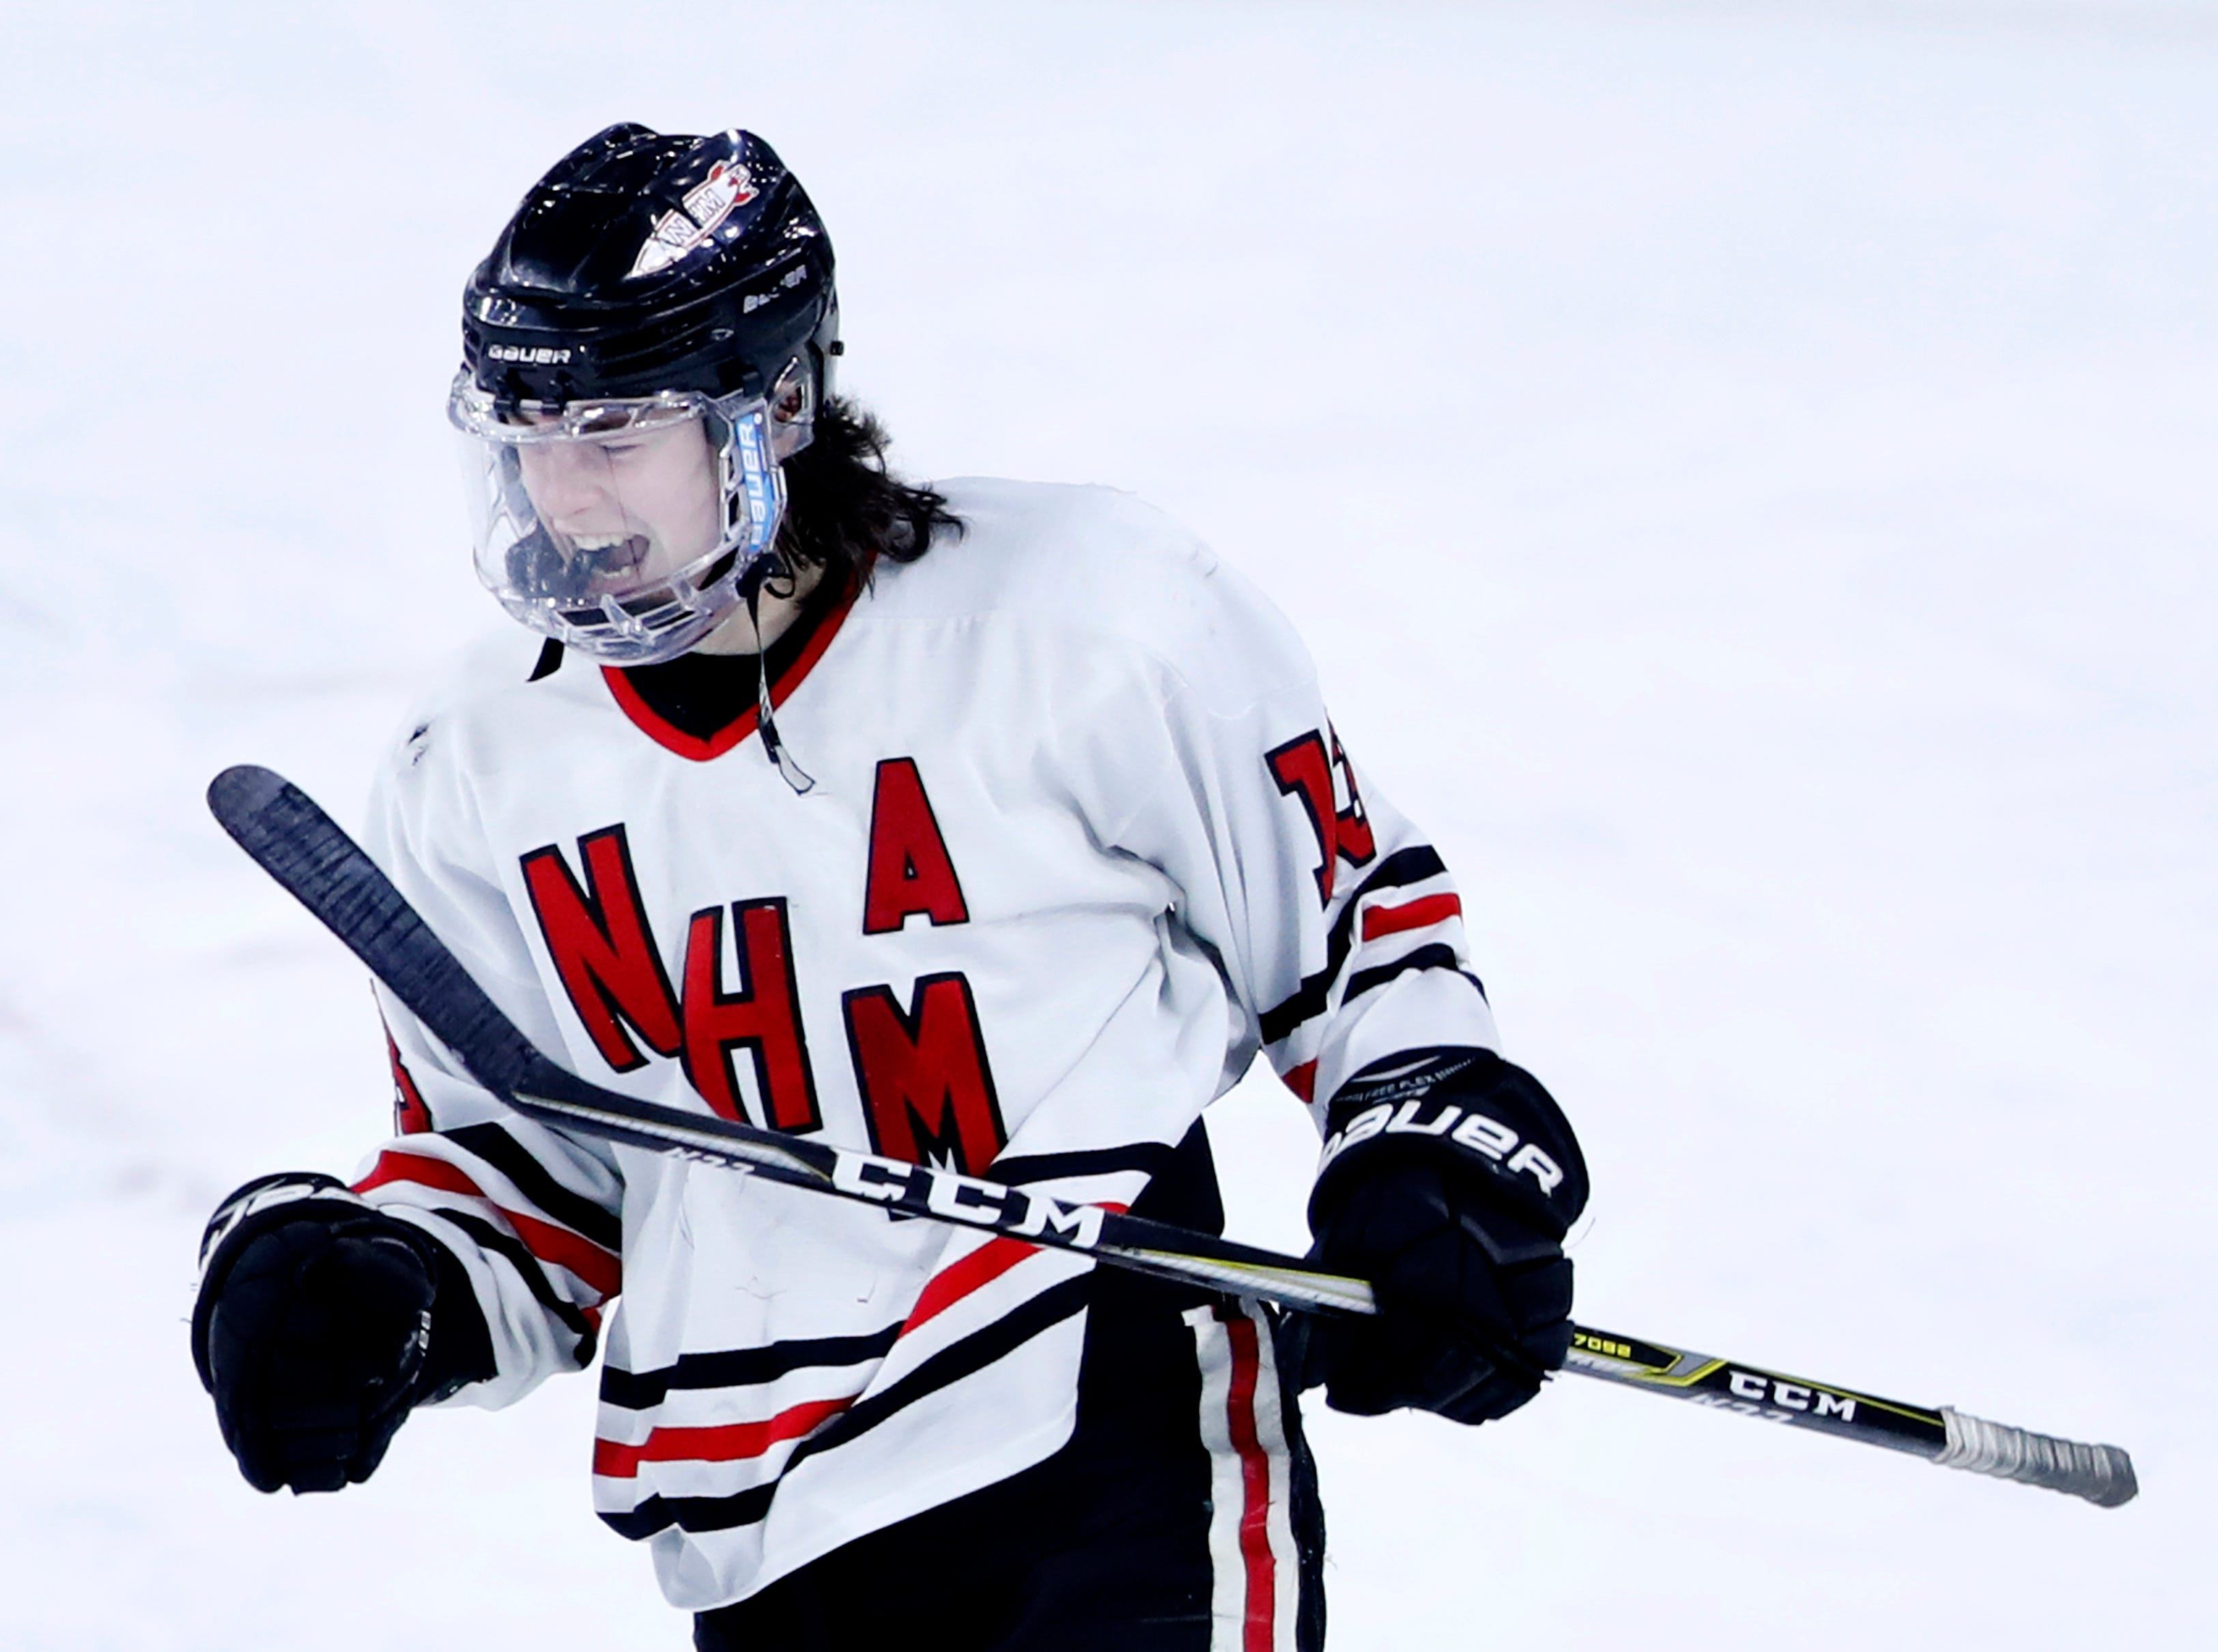 Neenah/Hortonville/Menasha's Luke Elkin celebrates after scoring on an open net to finish their WIAA State Hockey Tournament quarterfinal against Hudson 4-1 Thursday, Feb. 28, 2019, at Veterans Memorial Coliseum in Madison, Wis.